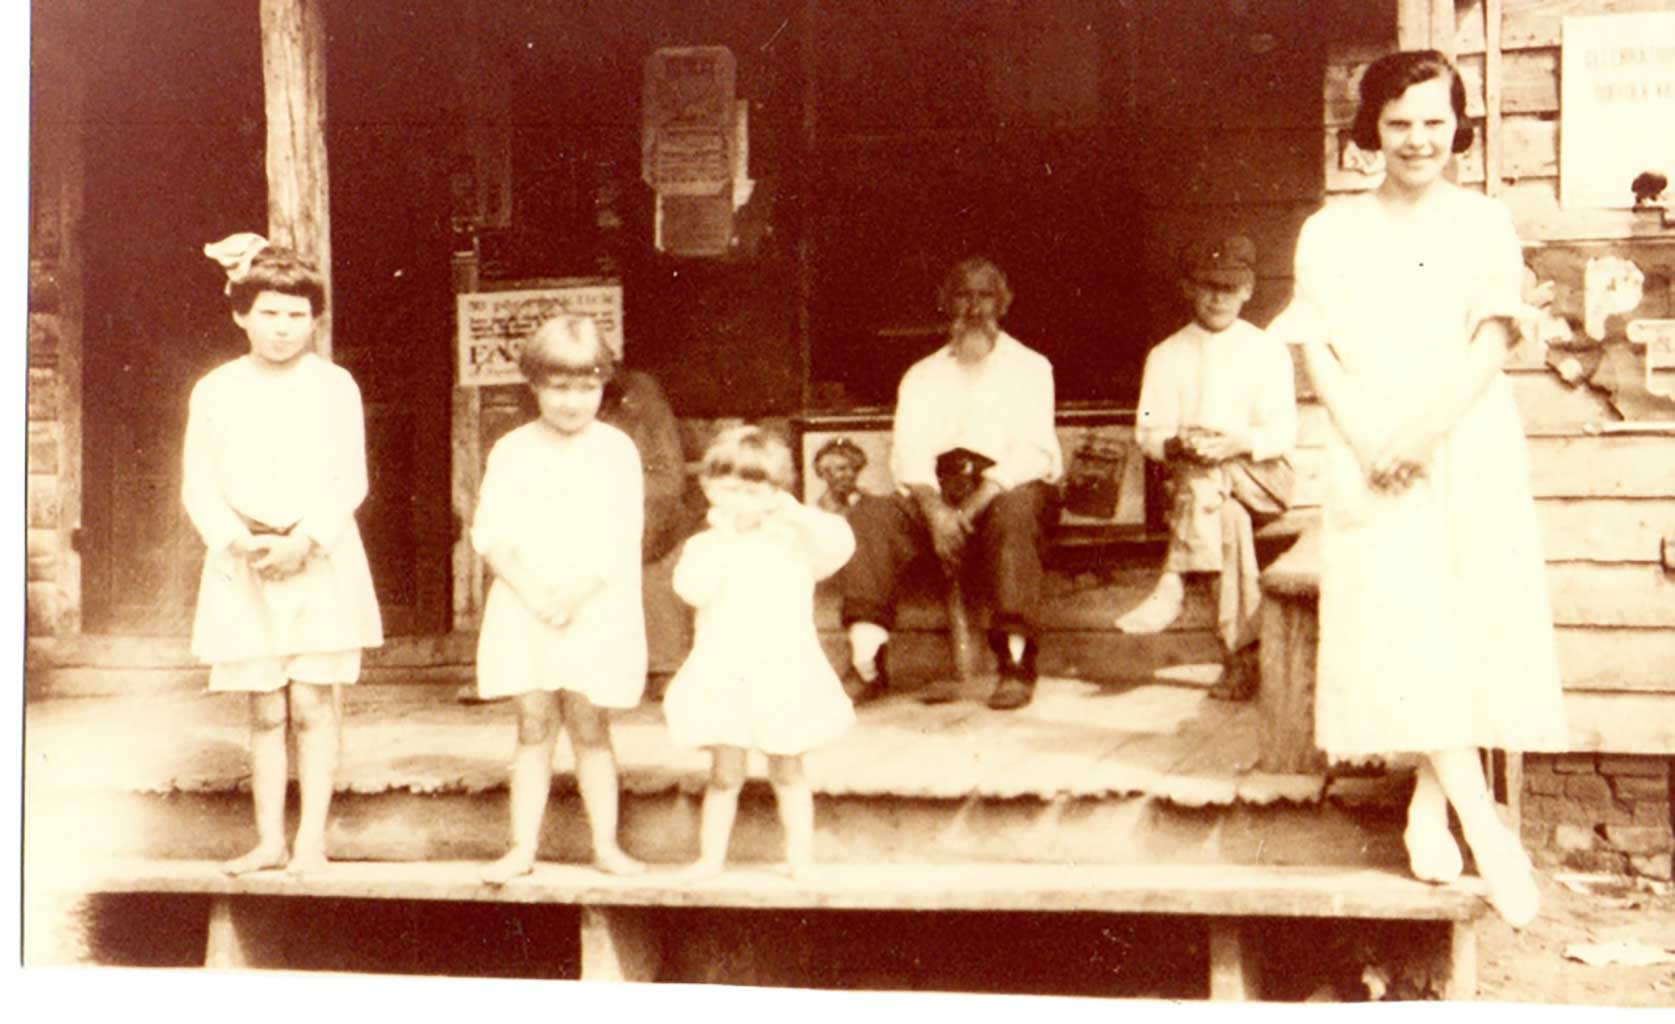 dailey-and-thompson-family-on-porch-img760